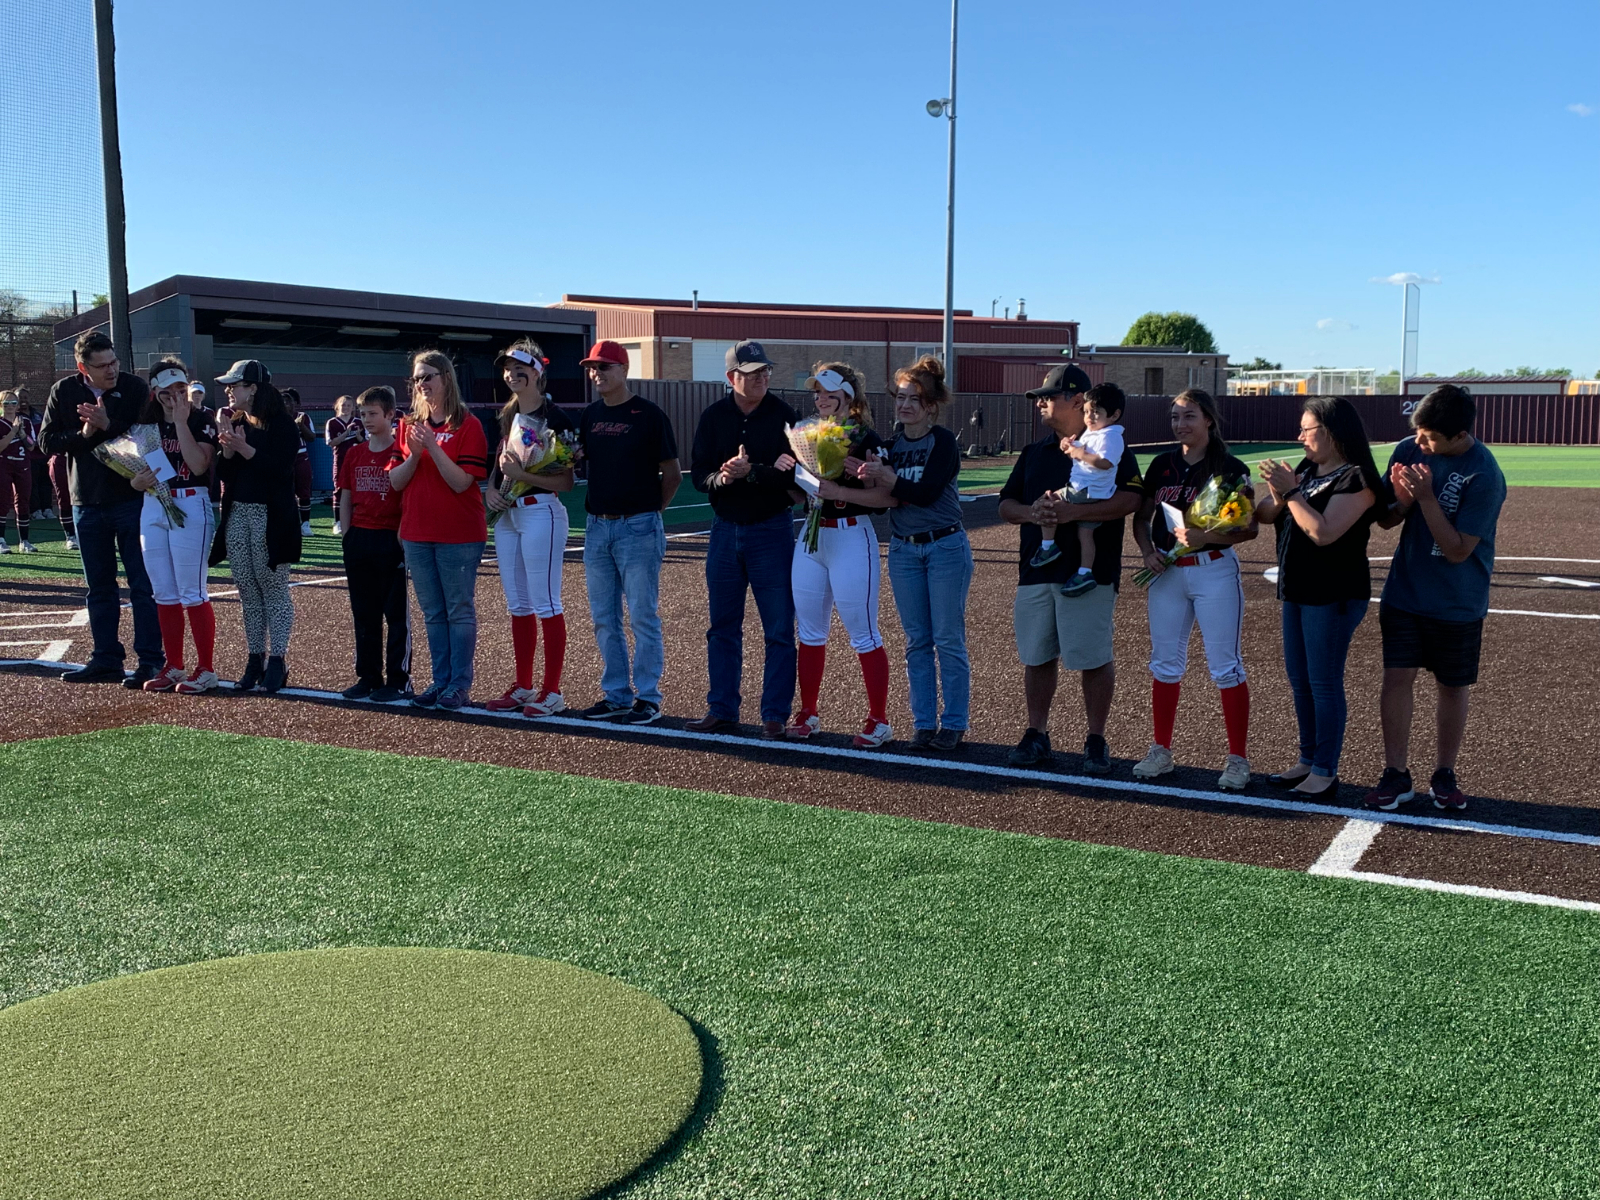 Varsity Softball Tops Off Senior Night With a Win Over Princeton 19-6